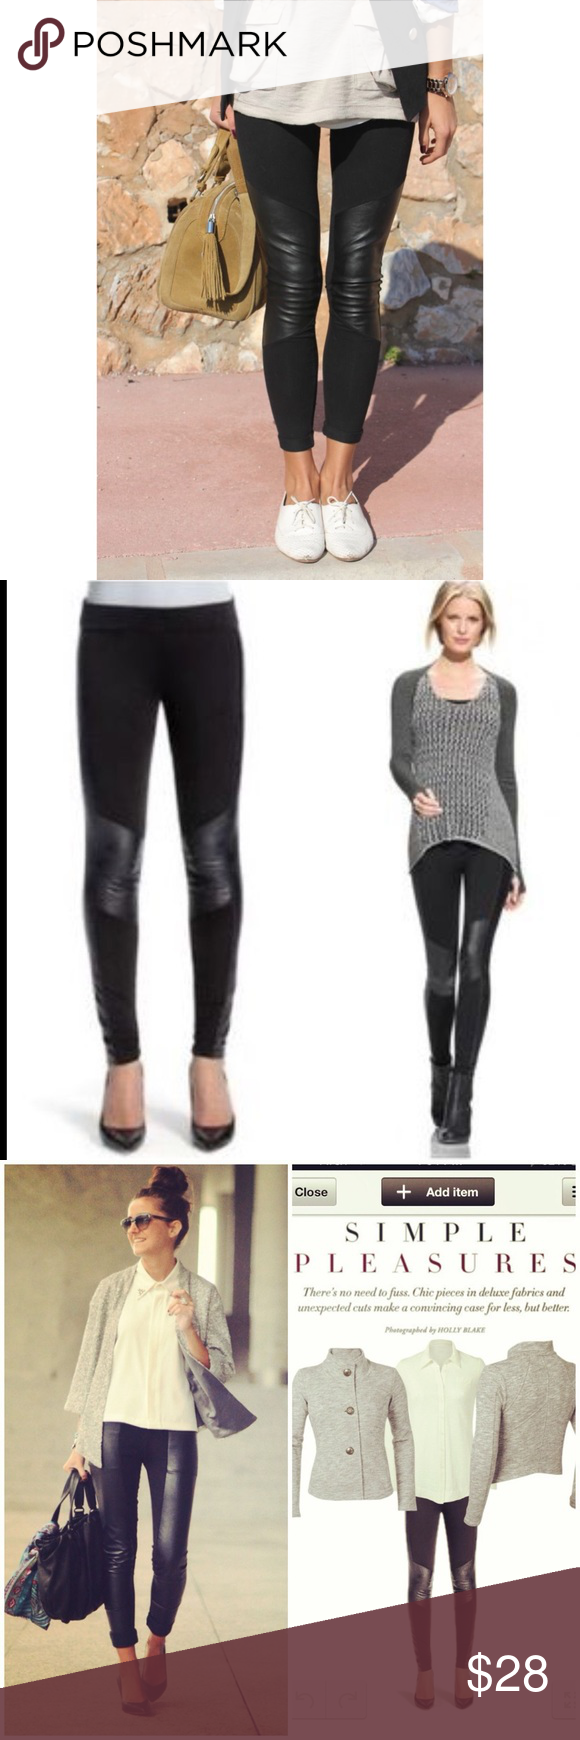 990c7b27b0217 CAbi Black Vegan Leather Ricky Moto Leggings XS CAbi Black Vegan Leather  Ricky Moto Leggings Size